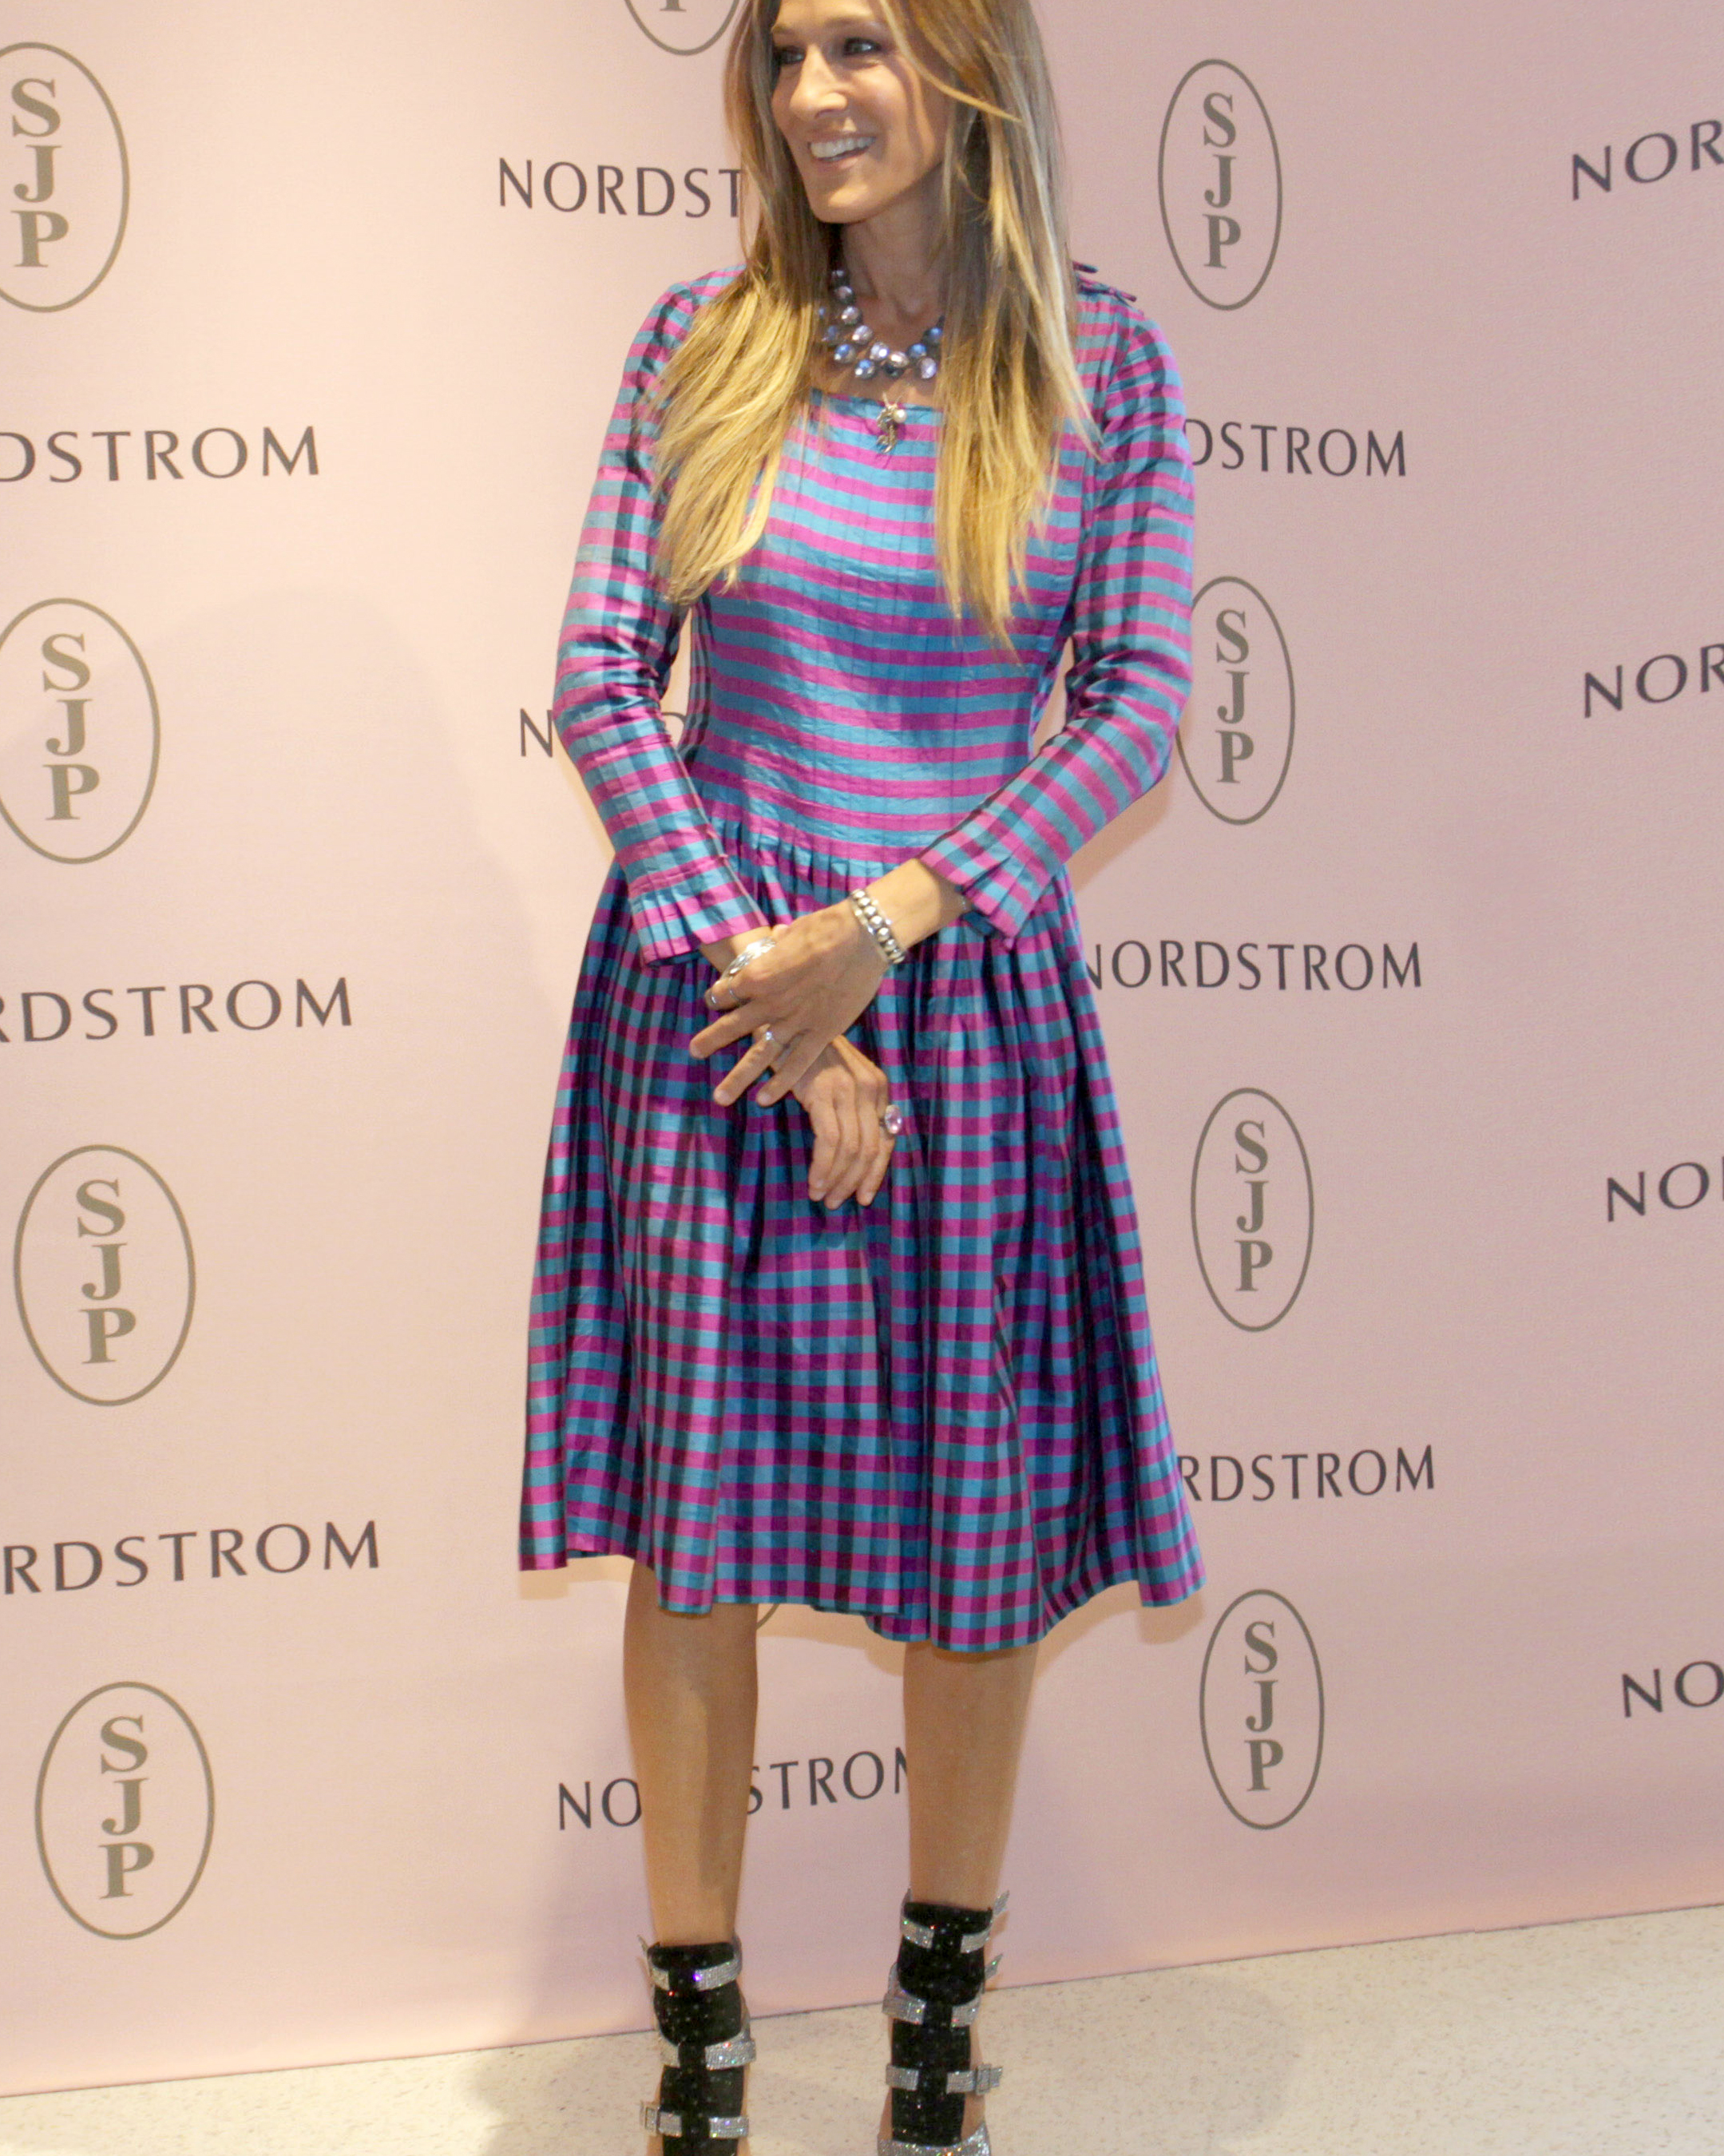 sjp-shoe-roundup-nordstrom-mall-shoe-collection-event-0515.jpg